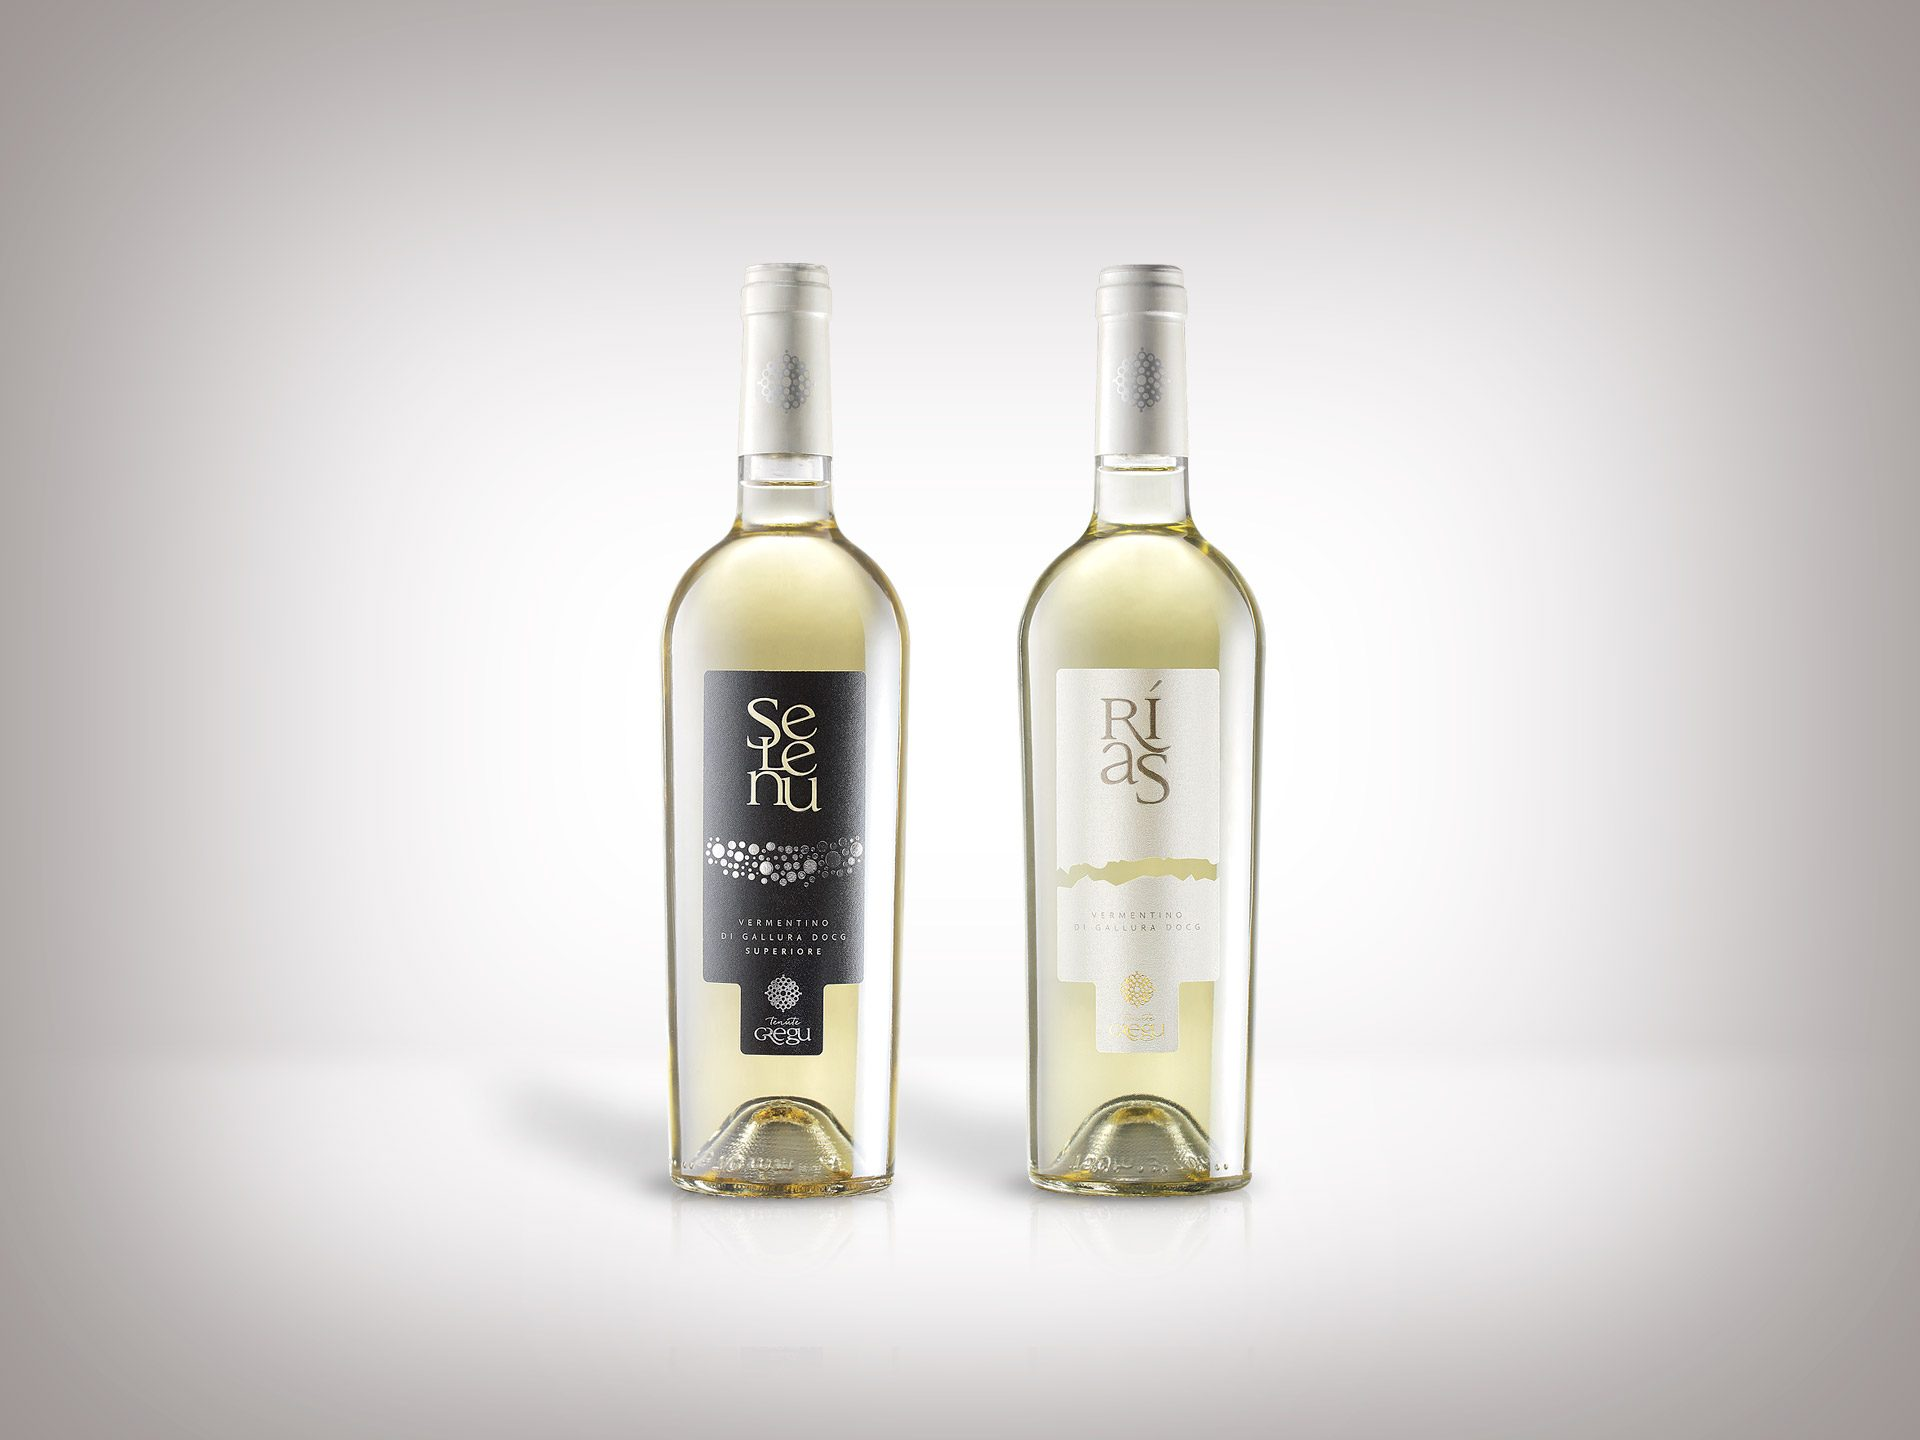 Packaging design etichette vini Tenute Gregu